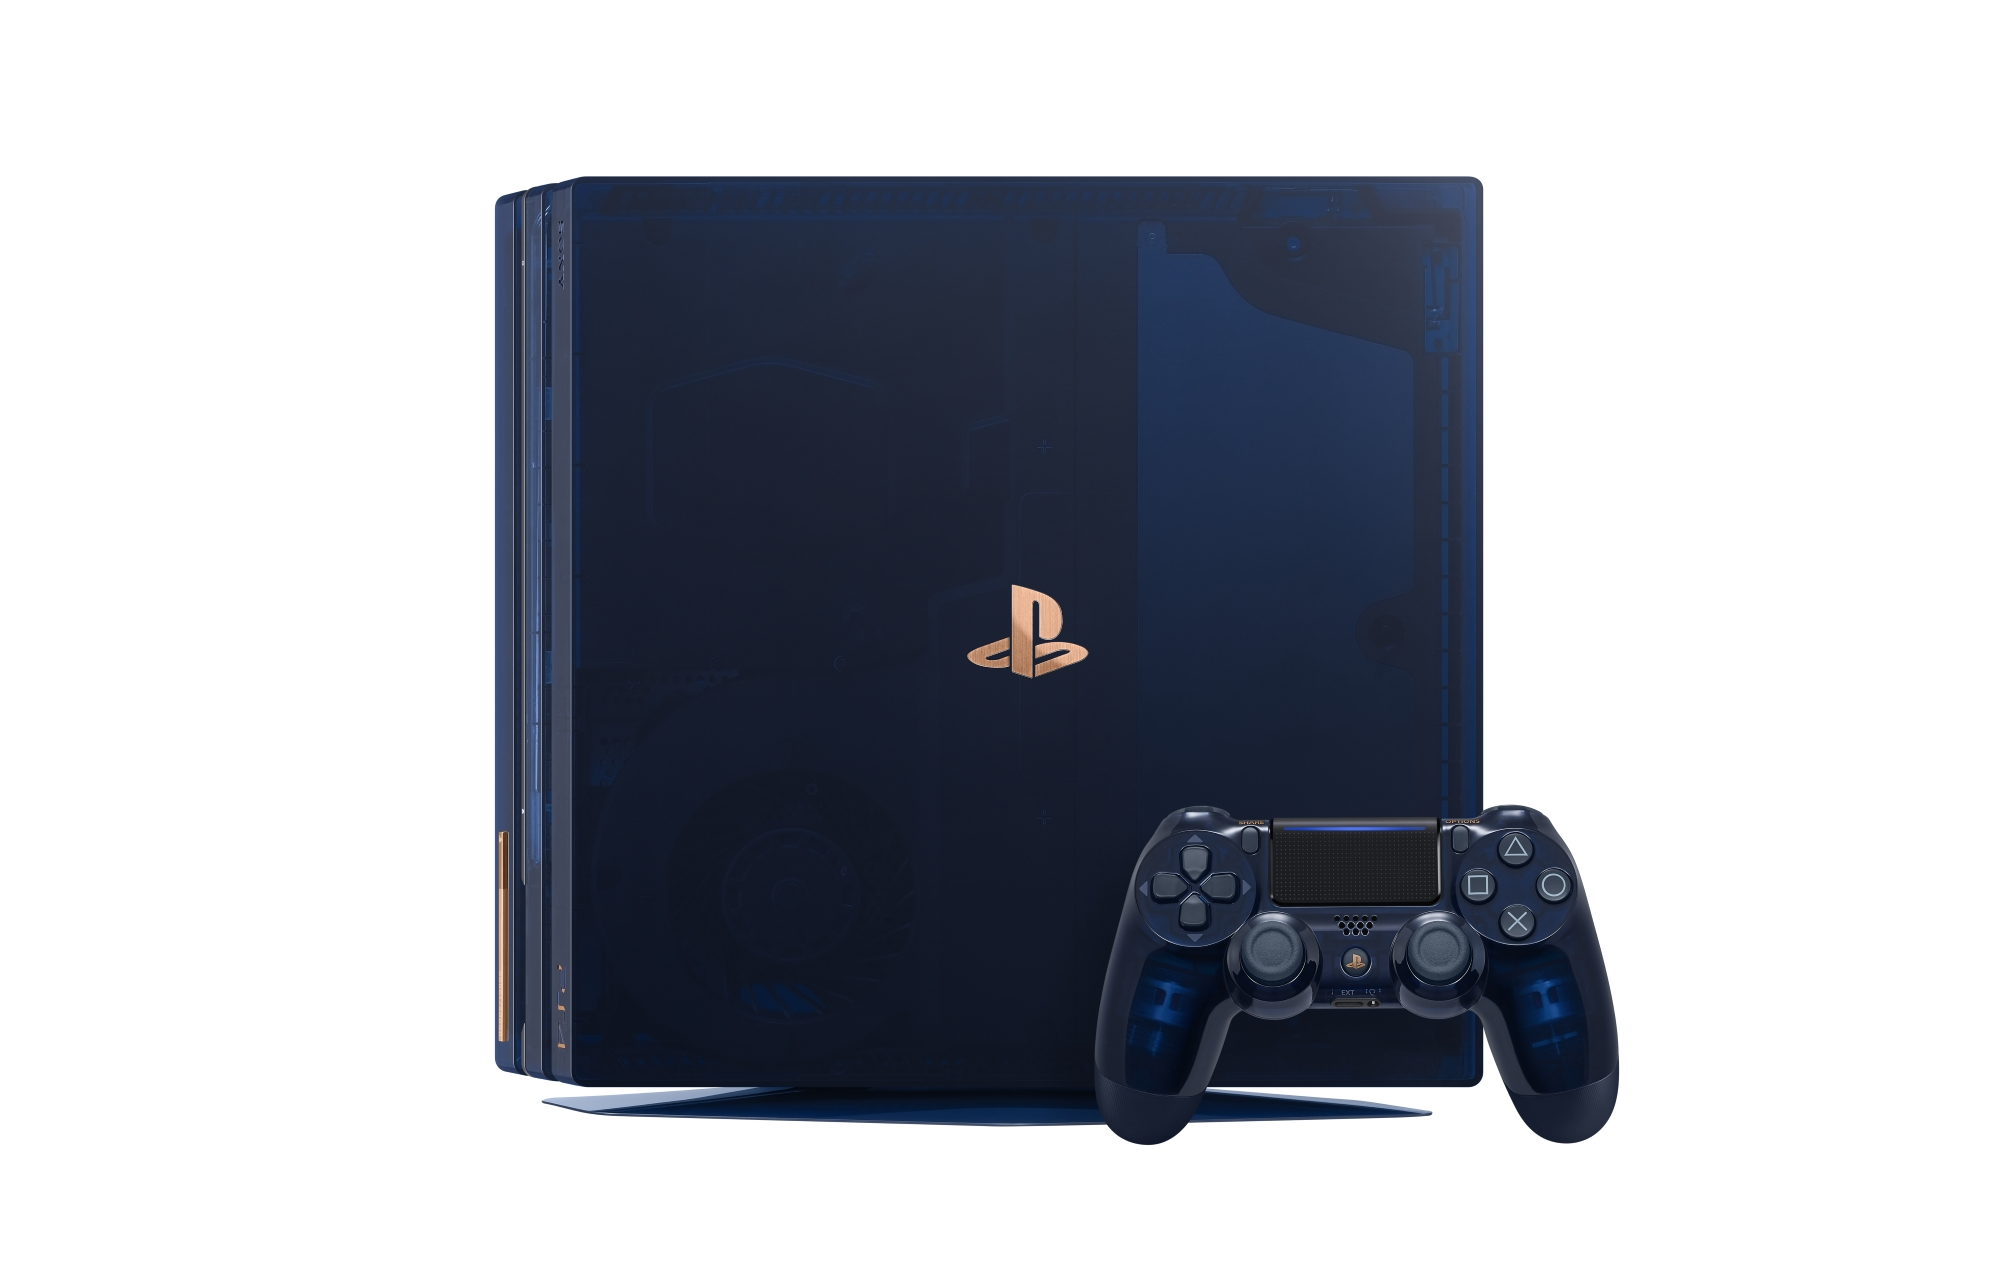 That is a nice looking console